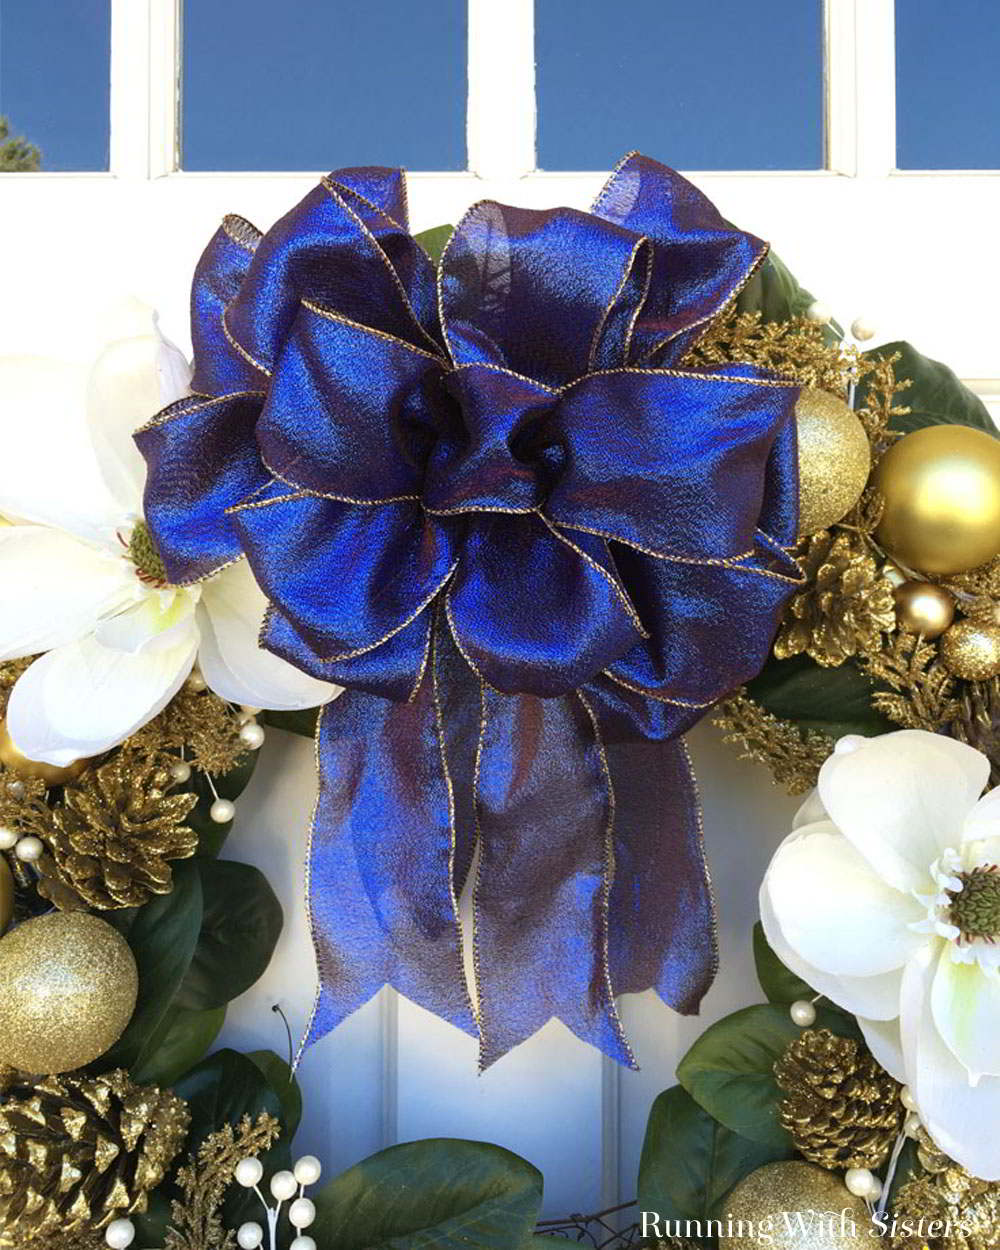 Learn to tie a big loopy bow. The perfect bow for a wreath, a big gift, or a wedding pew. We'll show you how with this video tutorial.